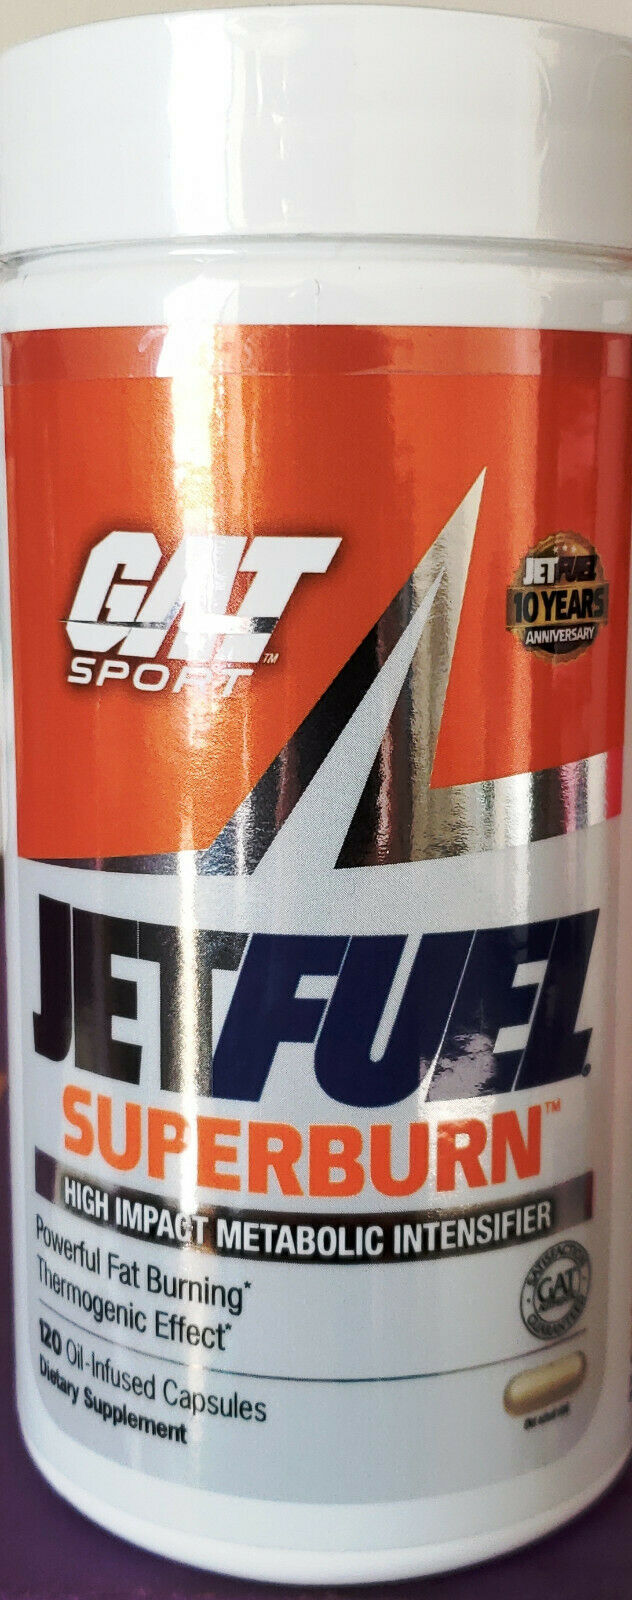 GAT Jetfuel Superburn Ultra Premium Fat Burner, 120 Oil-Infused Capsules image 2